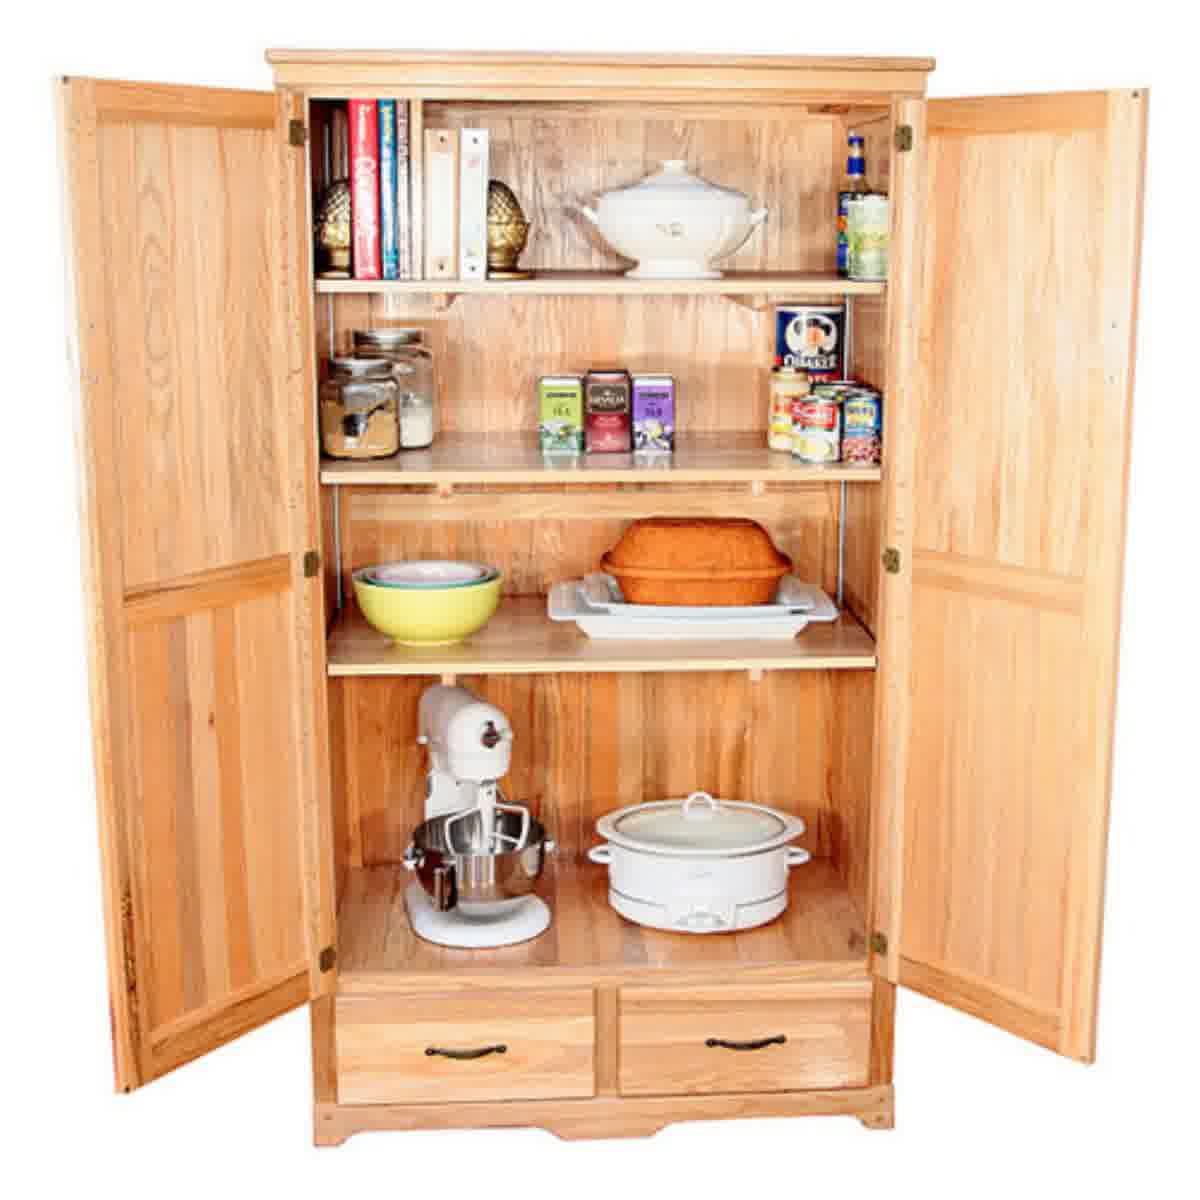 Kitchen pantry free standing photo - 2